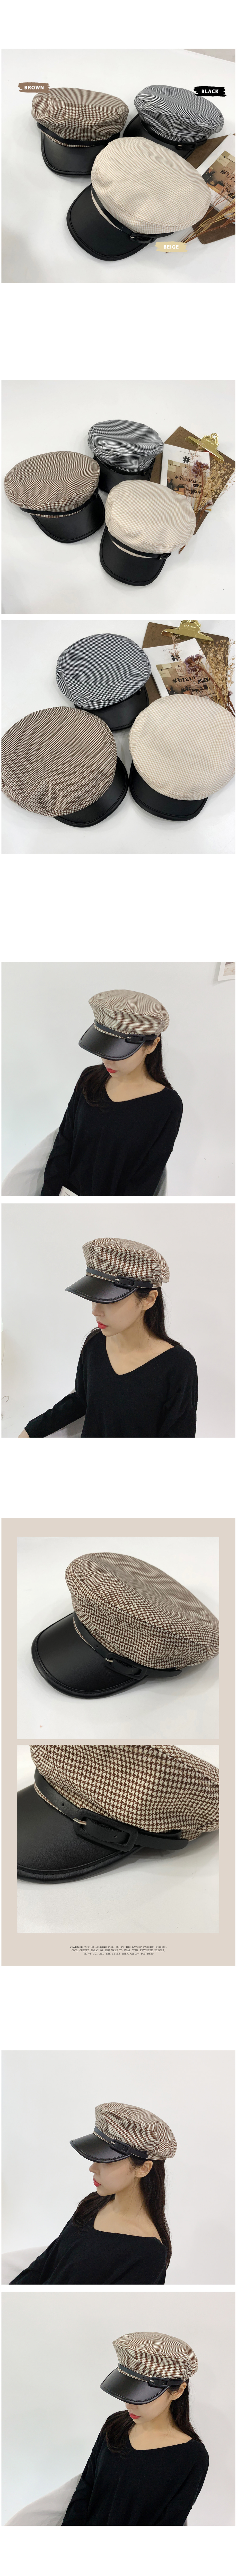 Houndstooth Check Madros Hunting Cap H#YW012